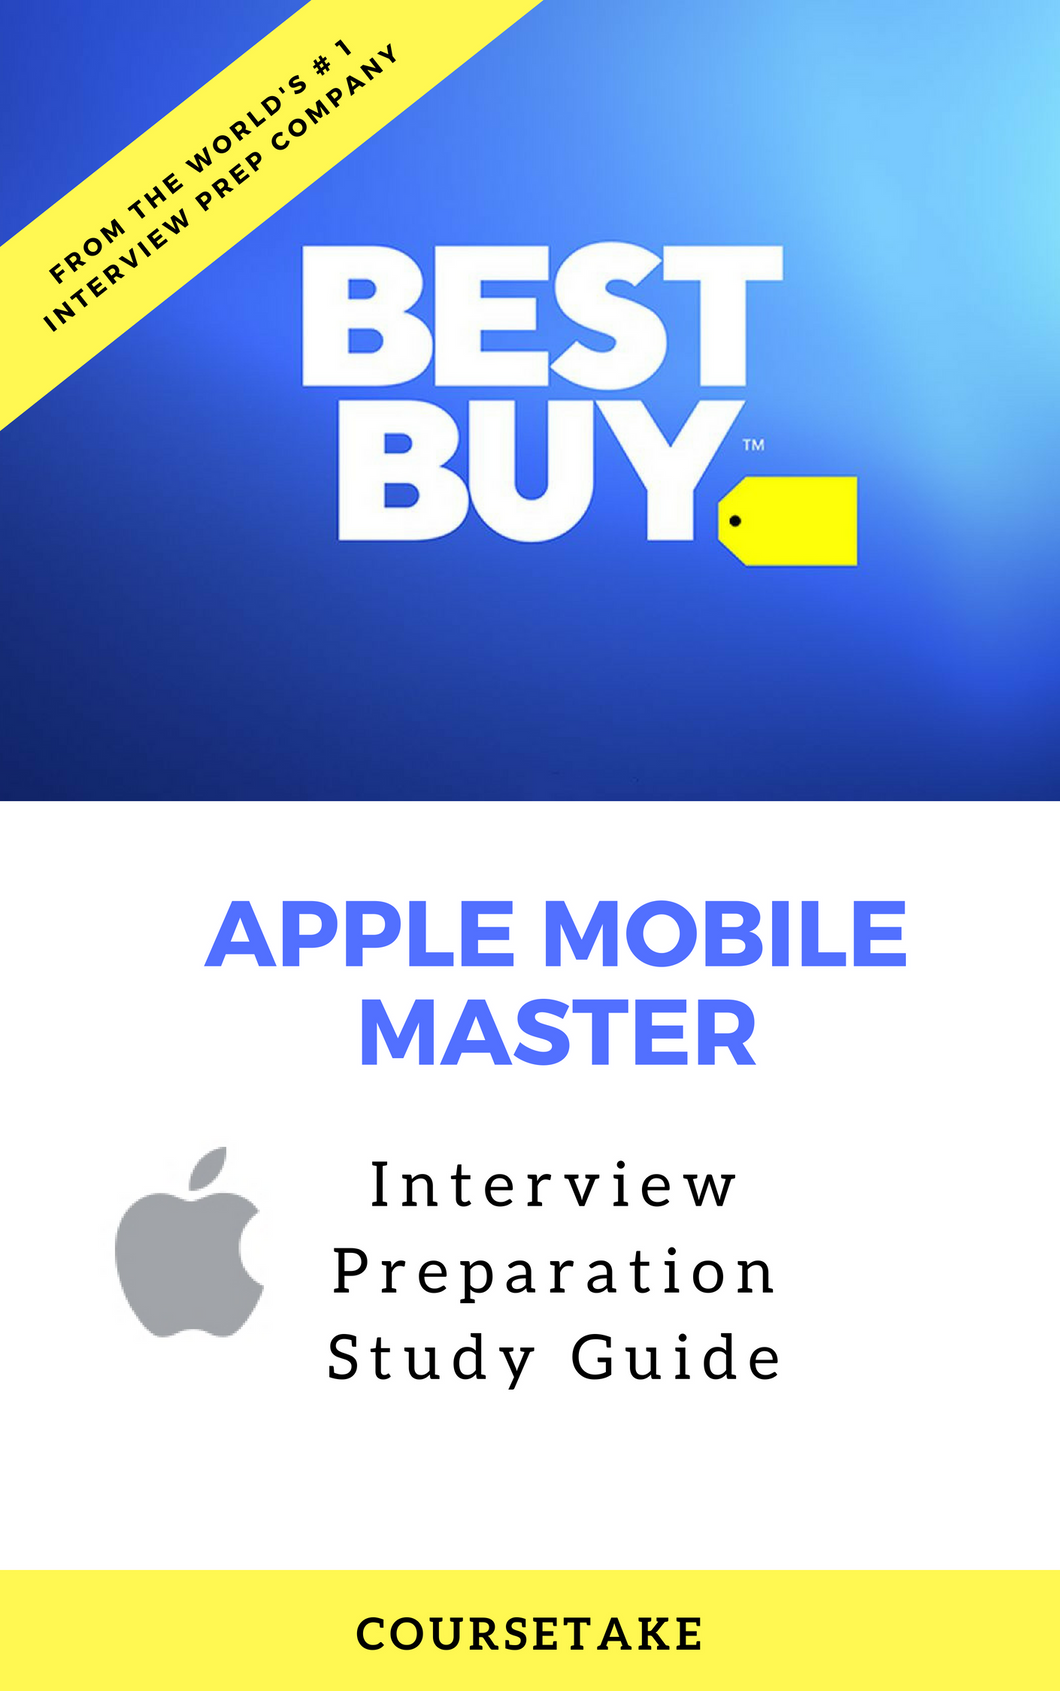 Best Buy Apple Mobile Master Interview Preparation Study Guide